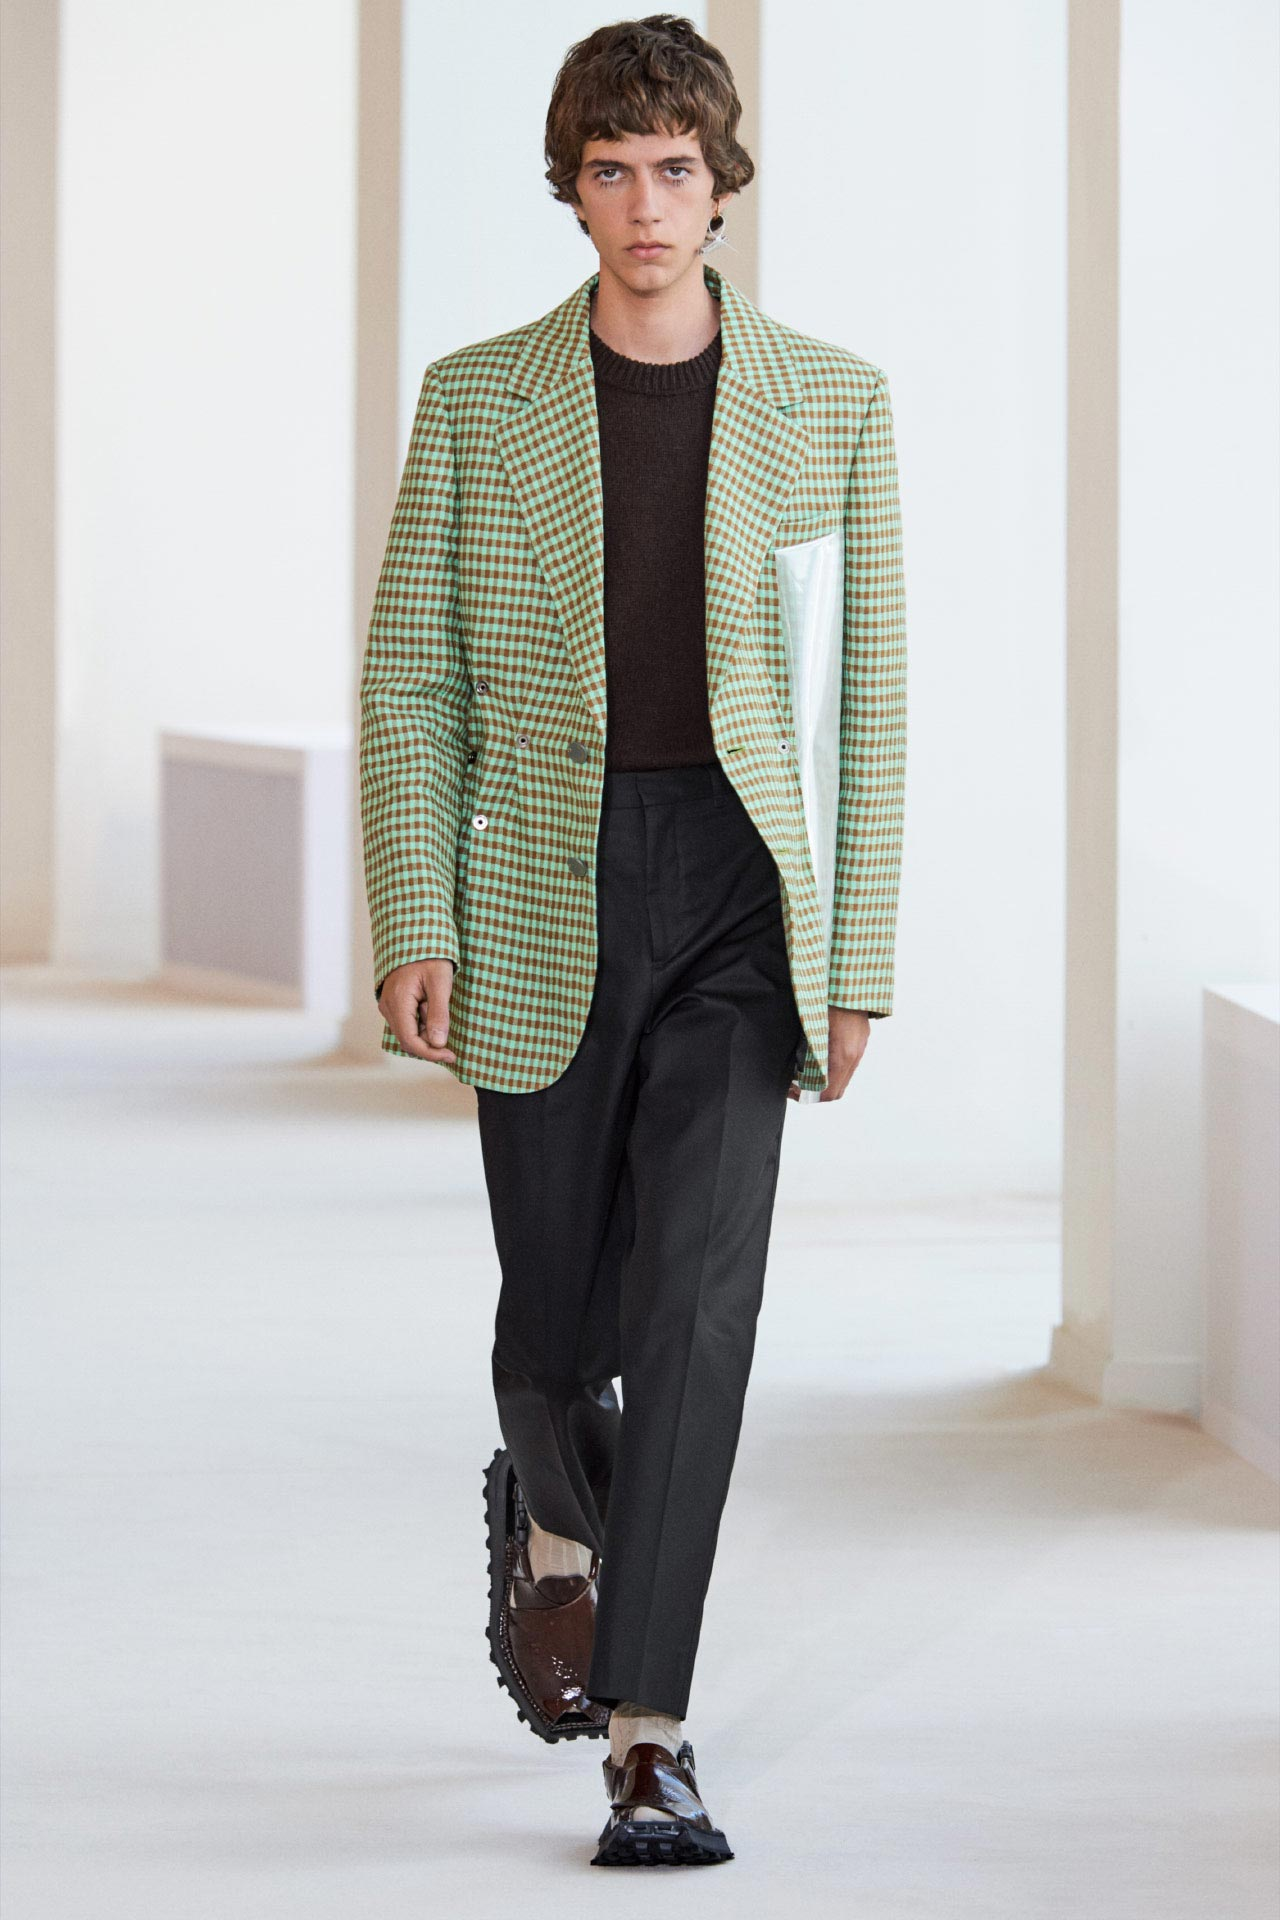 Look Spring/Summer, image 15